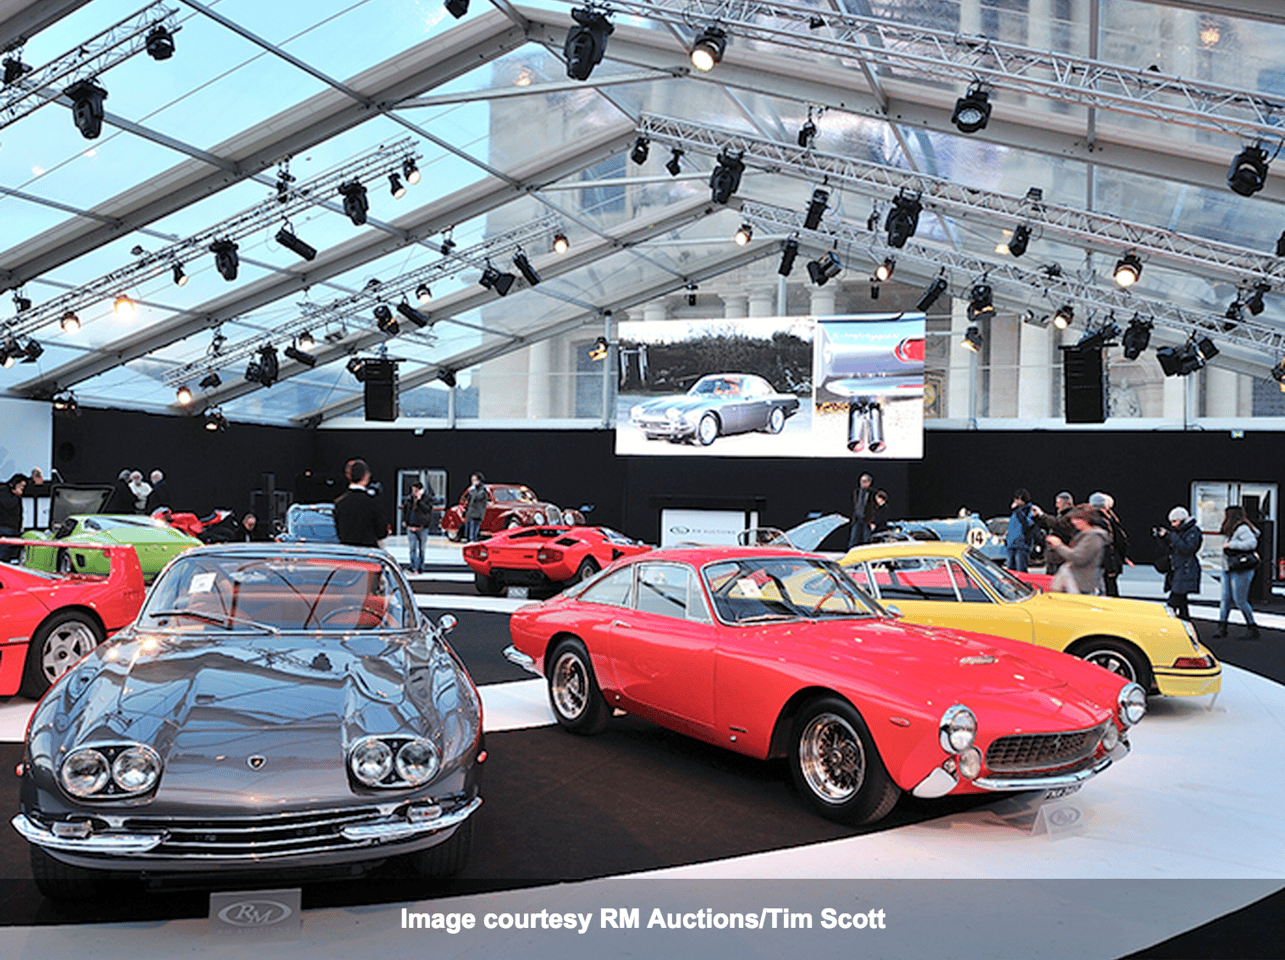 RM Auctions was one of the big three elite auction houses to hold a major auction in conjunction with the Retromobile festival in Paris this week.